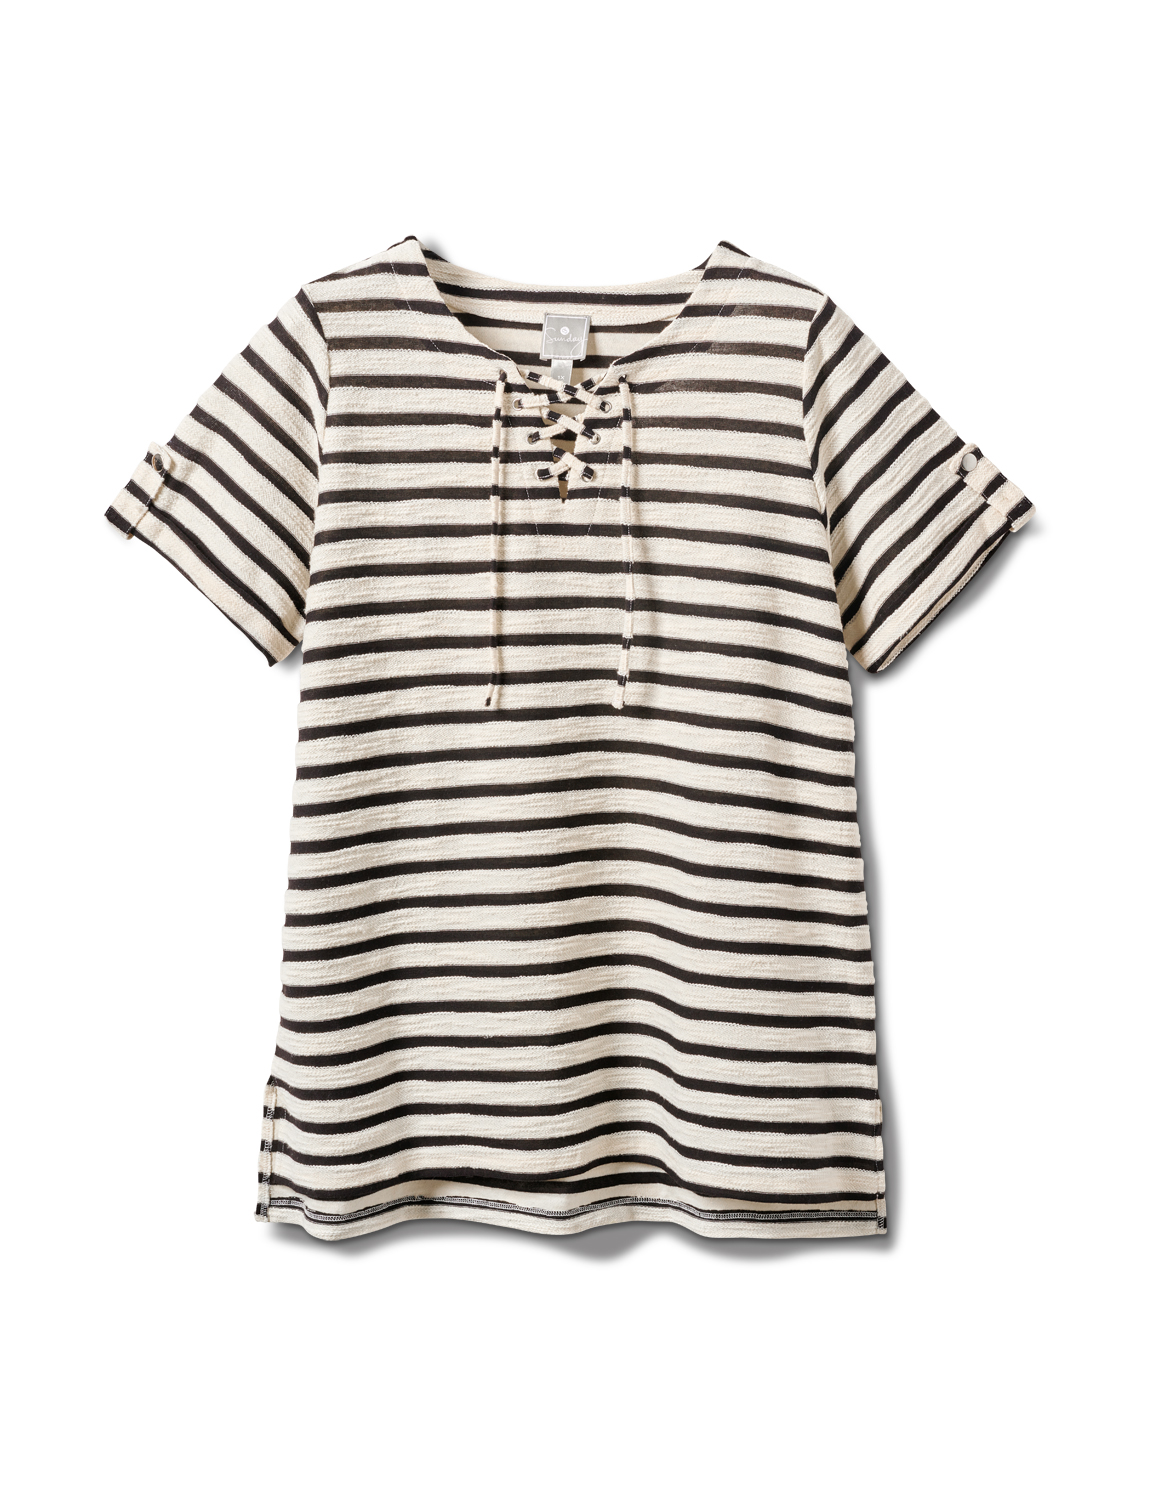 Lace Up Stripe Knit Top - Plus -Black/White - Front